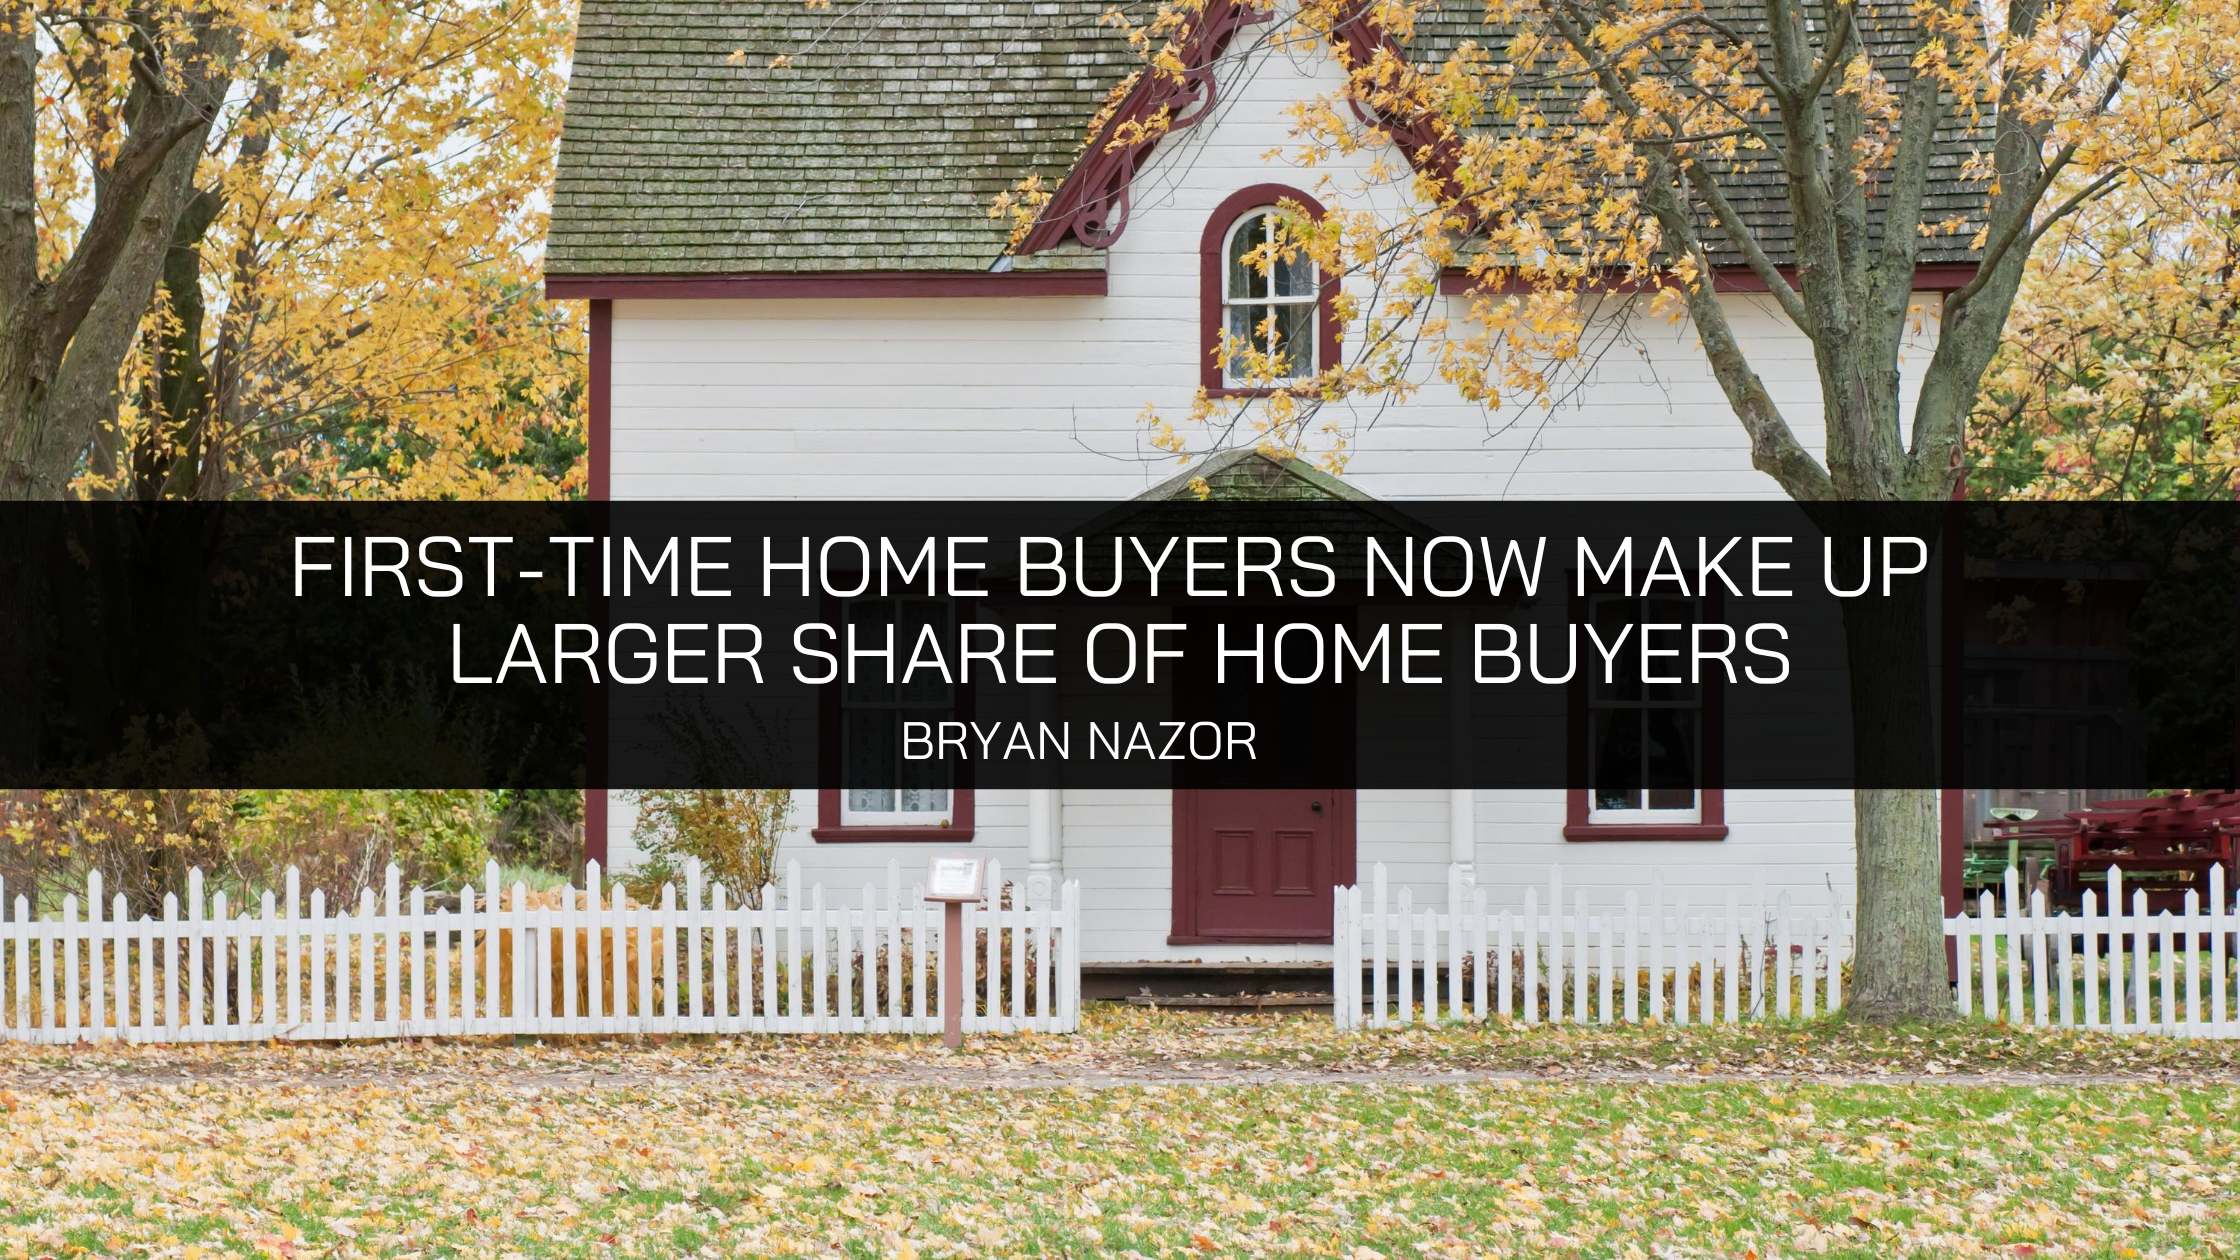 First-time Home Buyers Now Make Up Larger Share of Home Buyers, Says Bryan Nazor